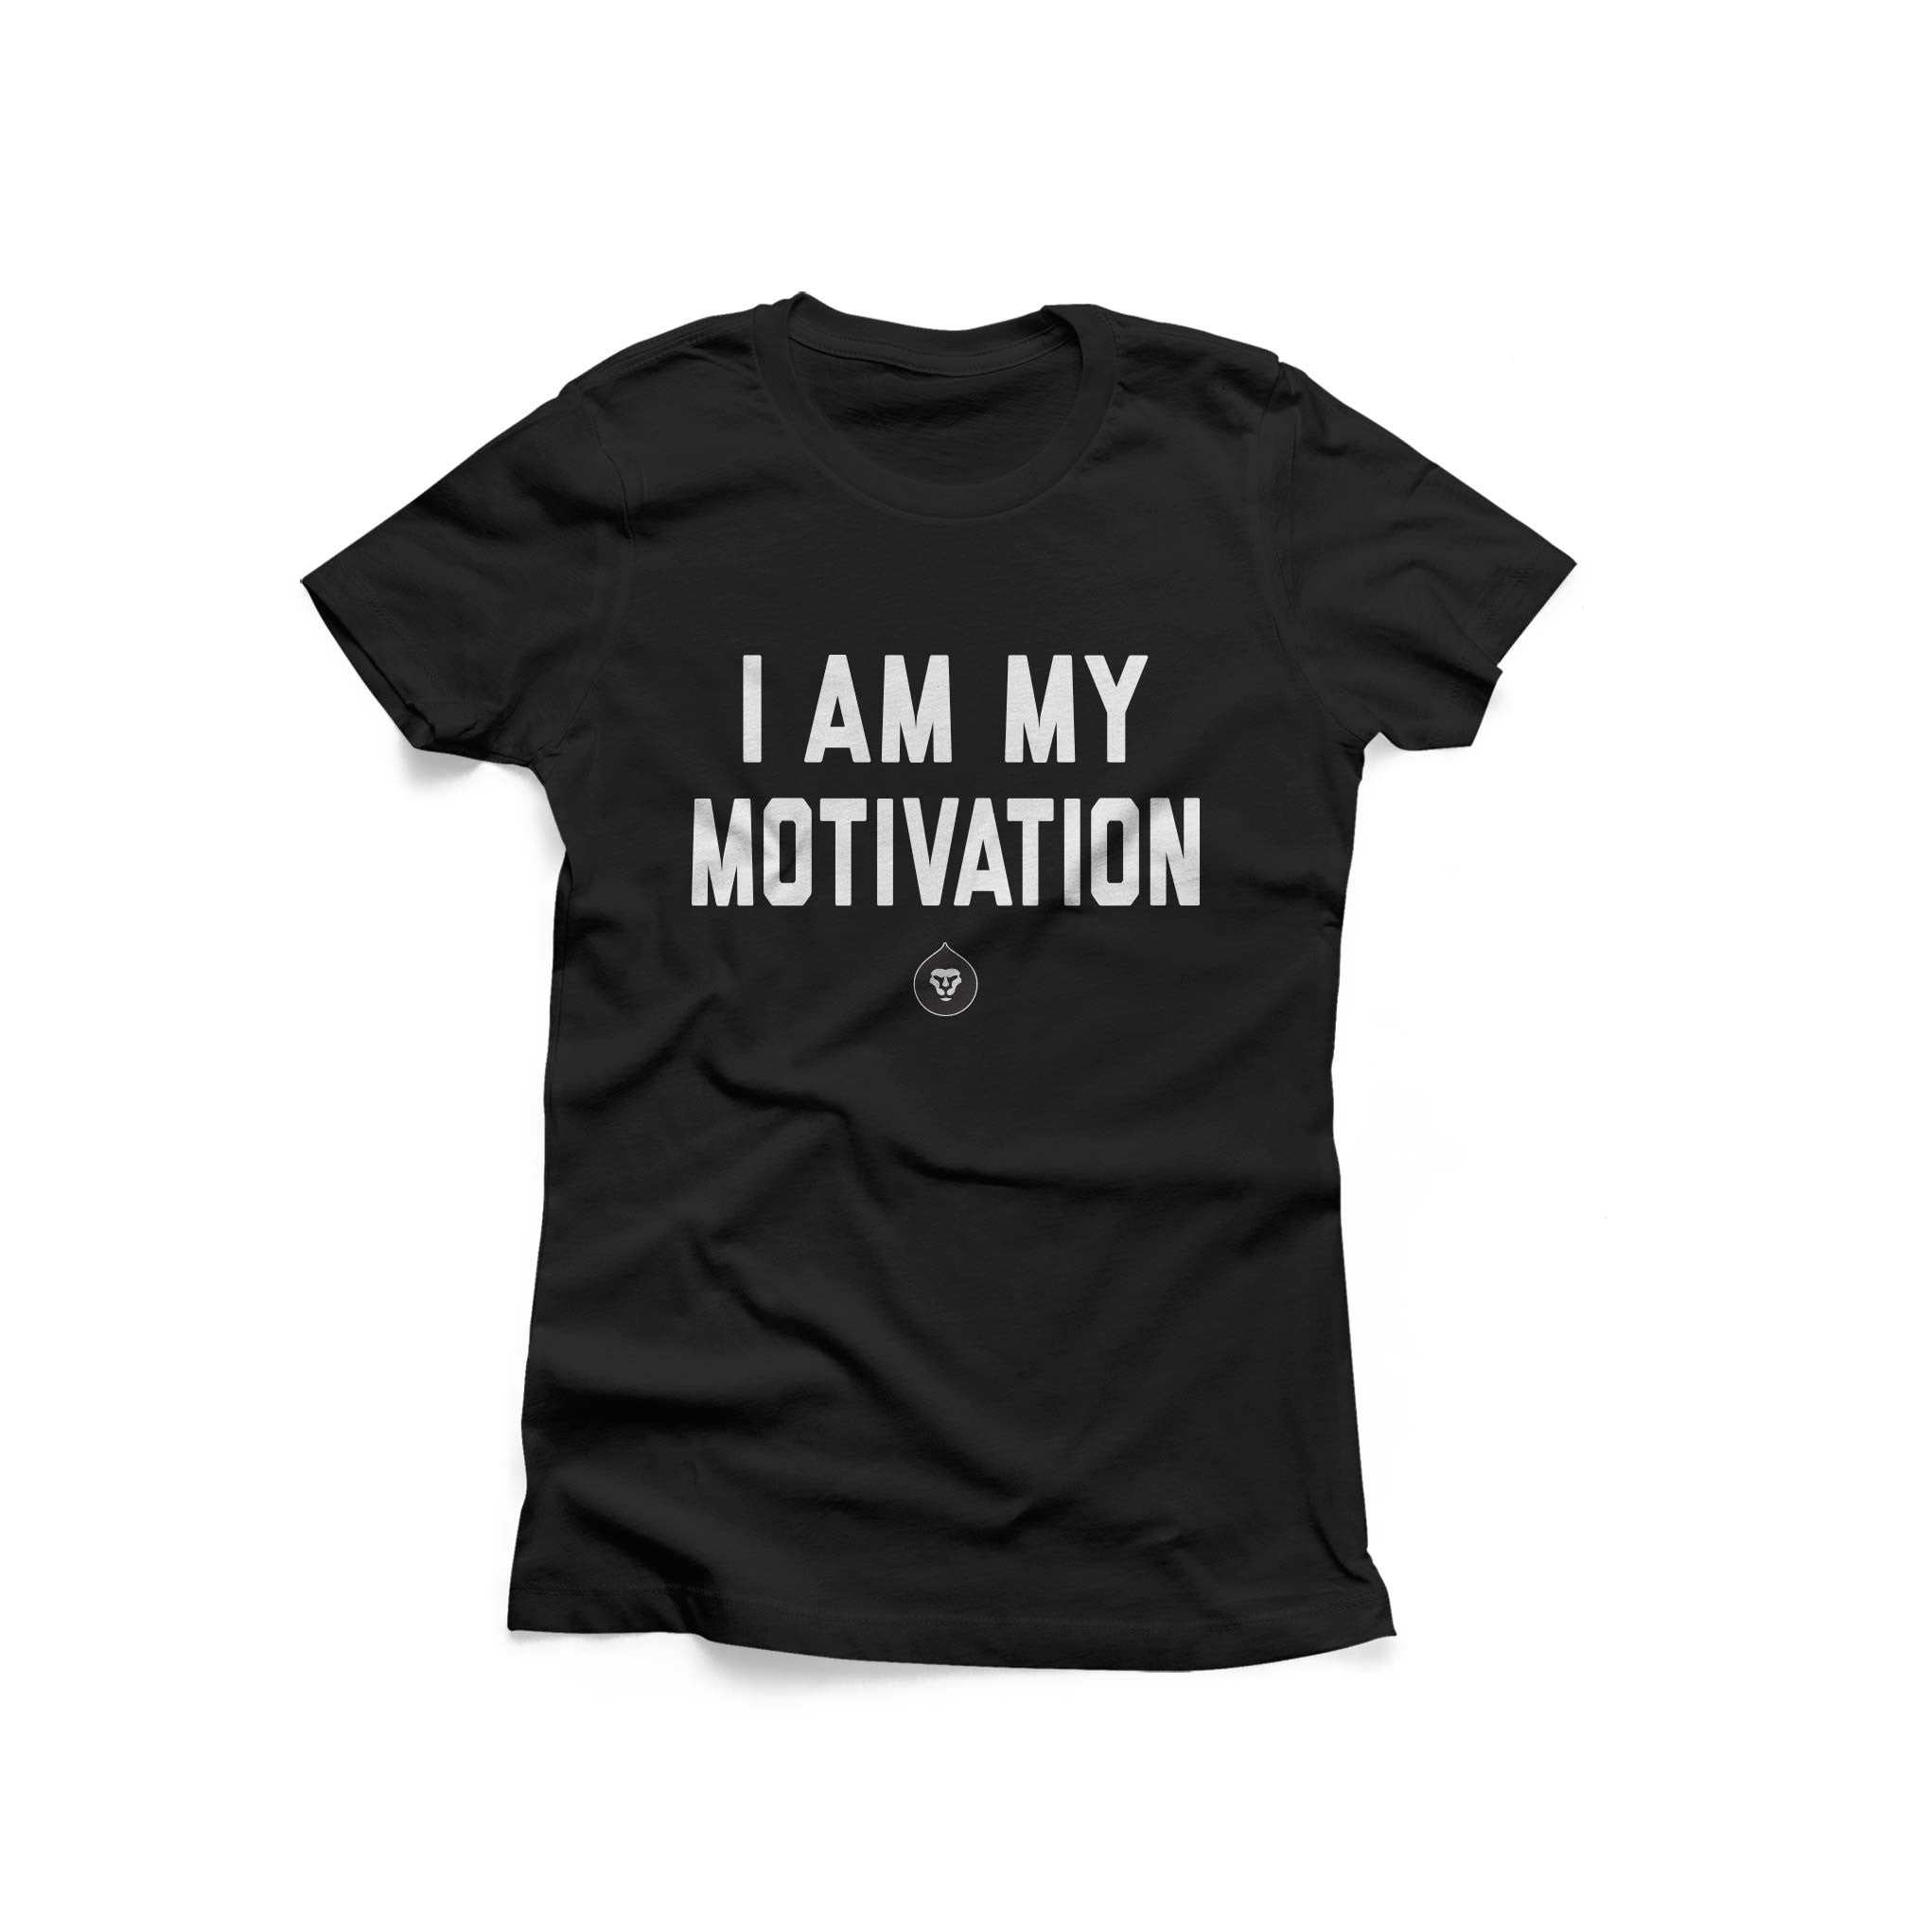 LADIES MOTIVATION - BLACK